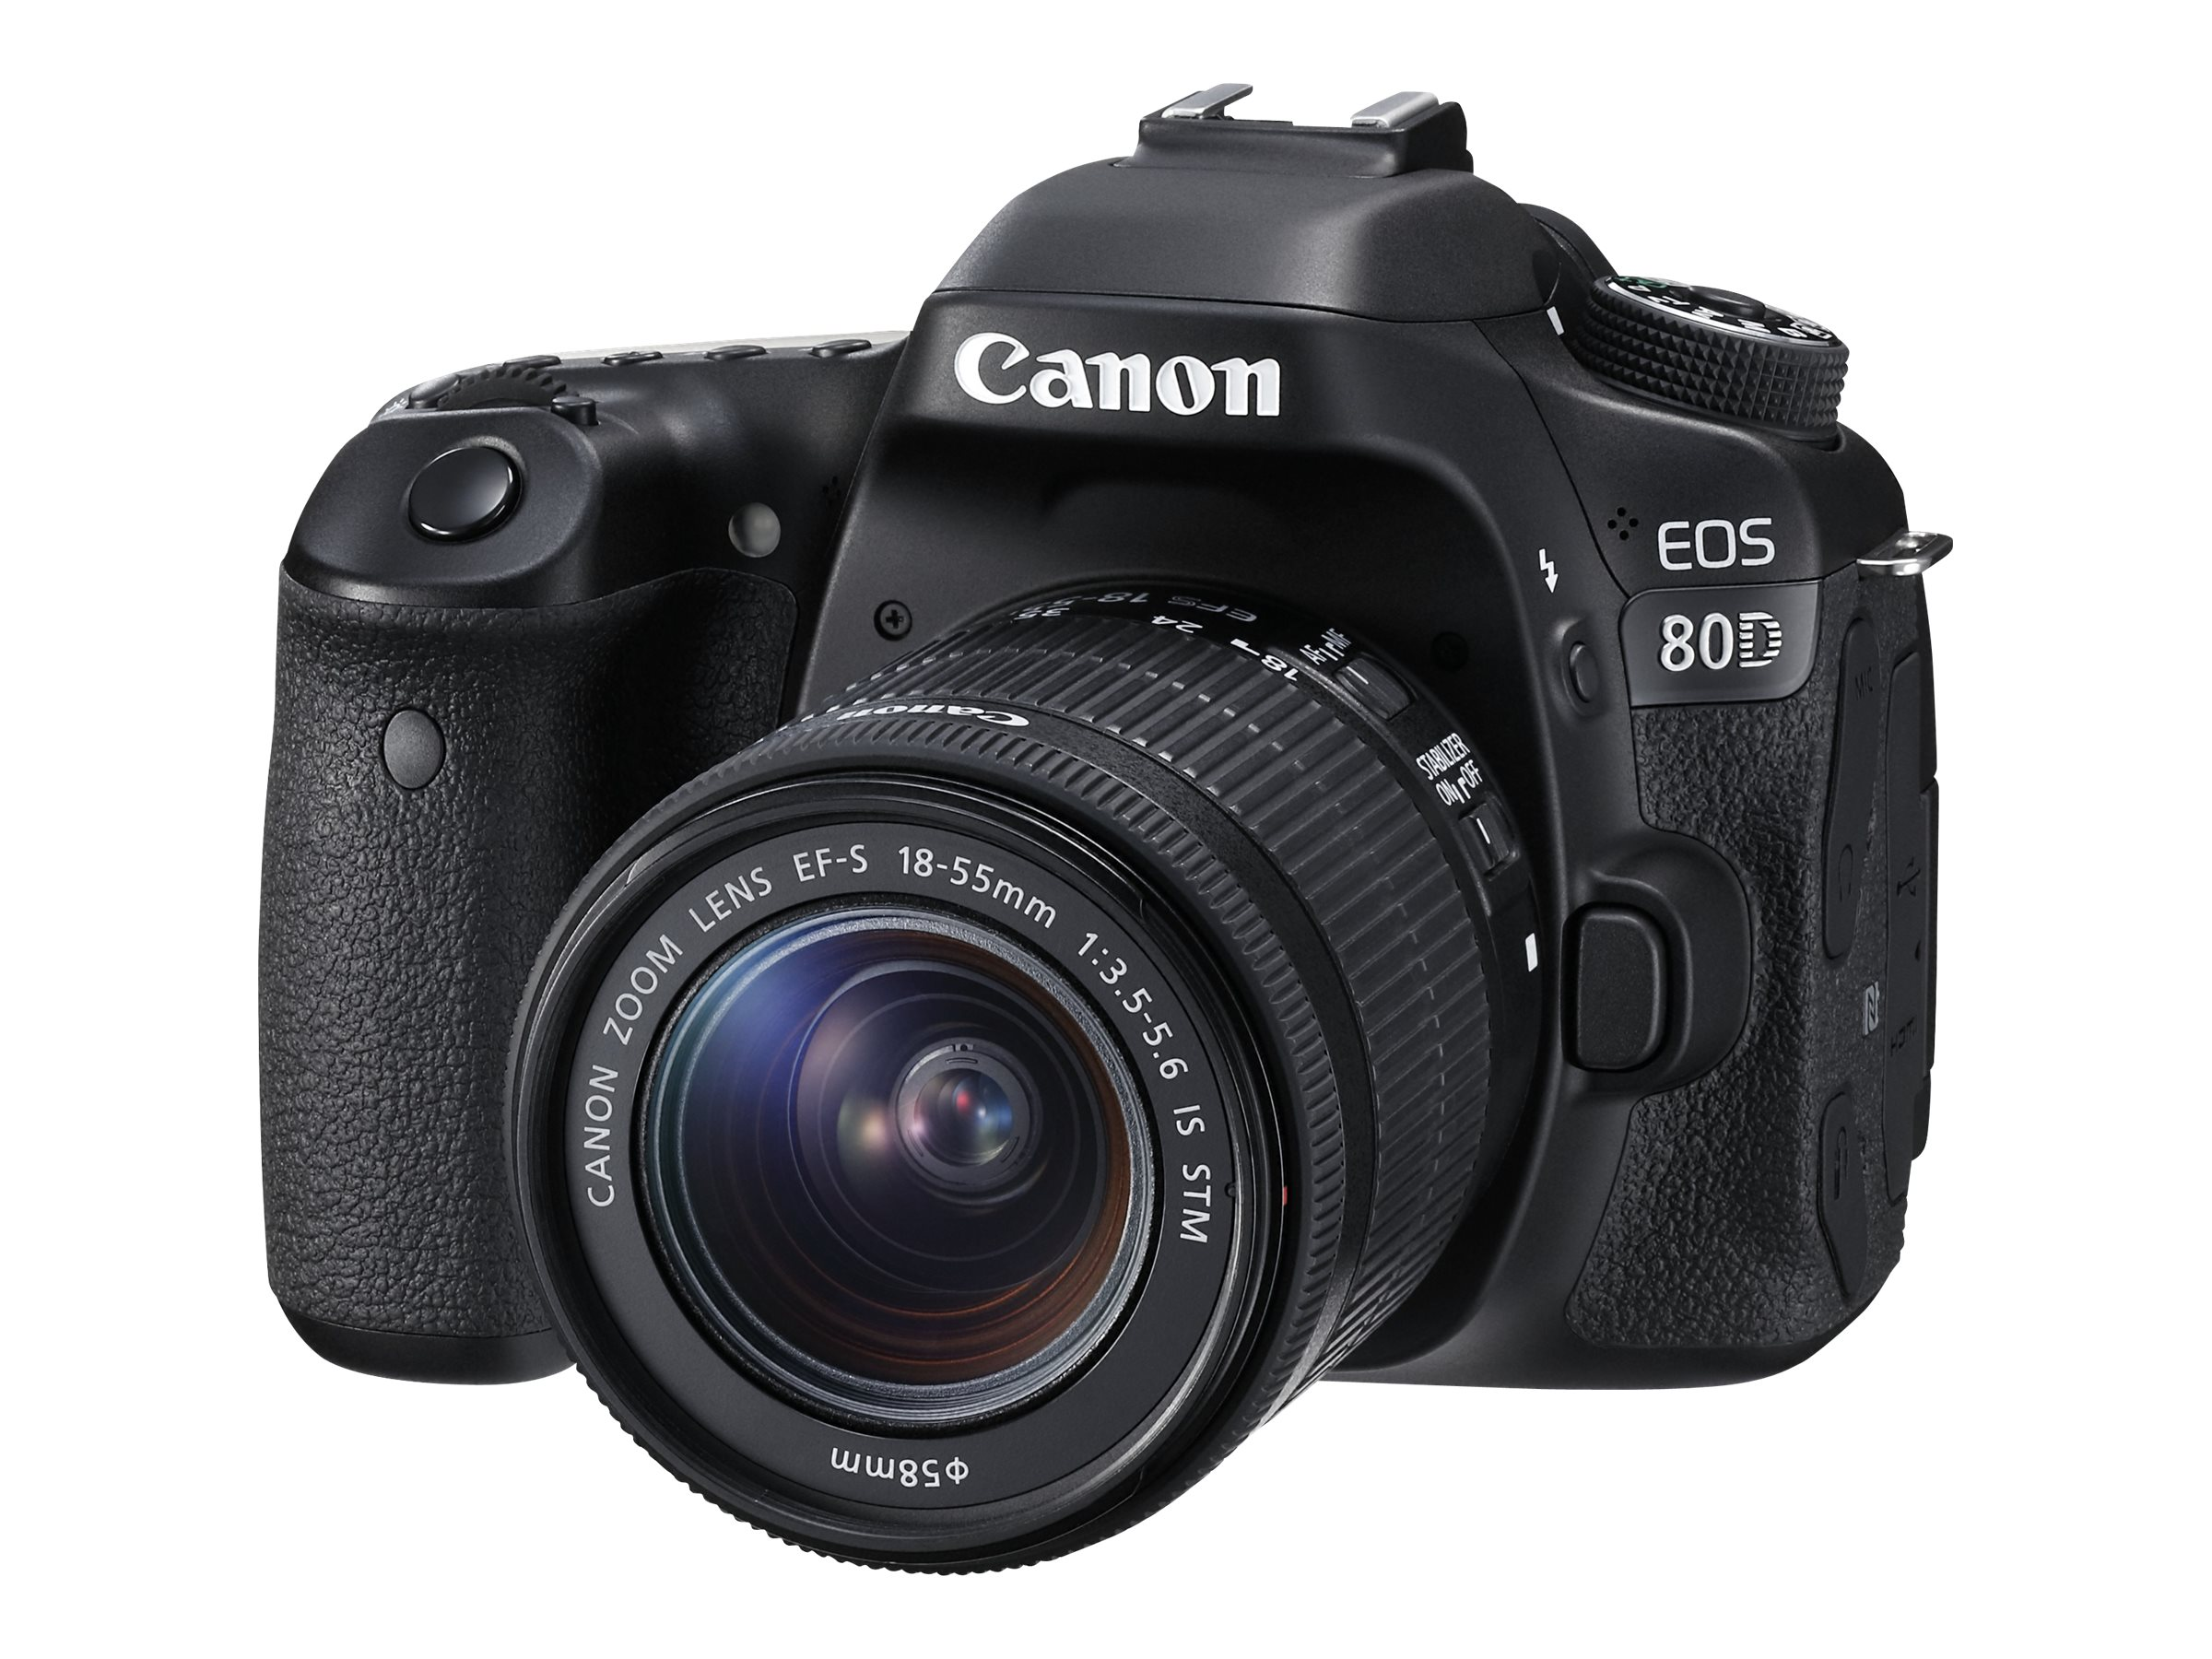 Image for Canon EOS 80D DSLR Camera with 18-55mm Lens from Circuit City